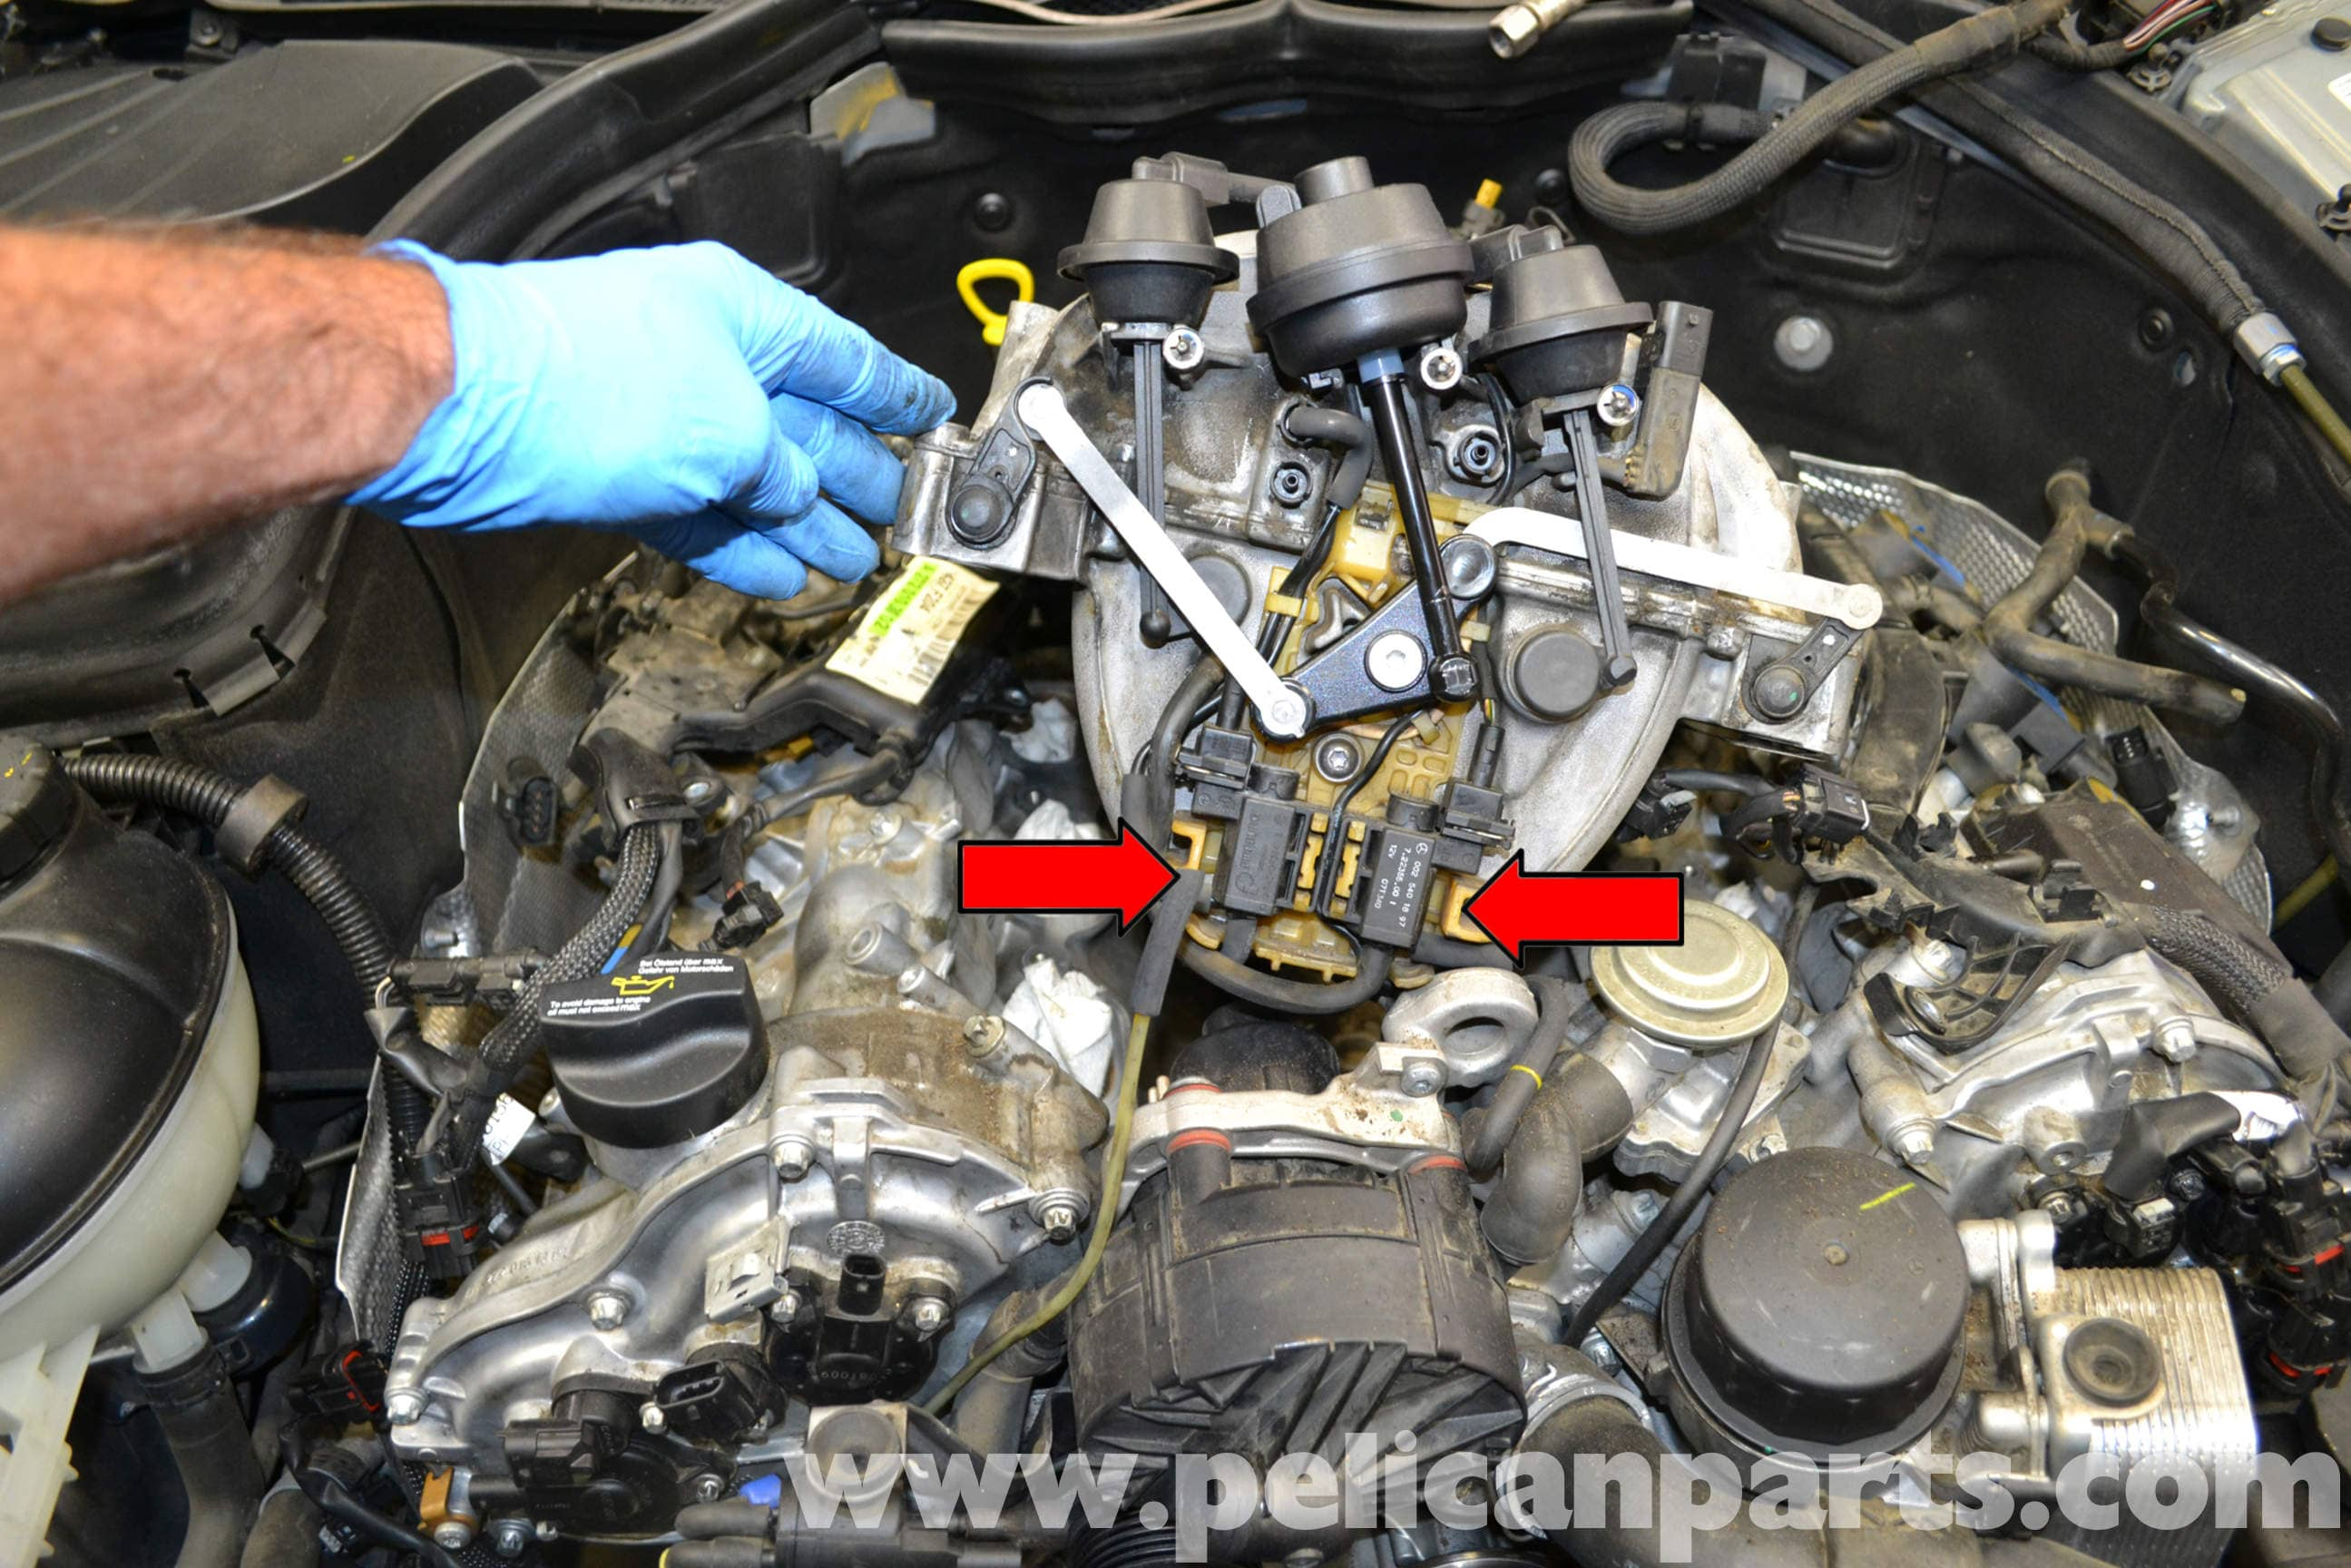 Mercedes-Benz W204 EGR Change-Over Valve Replacement - (2008